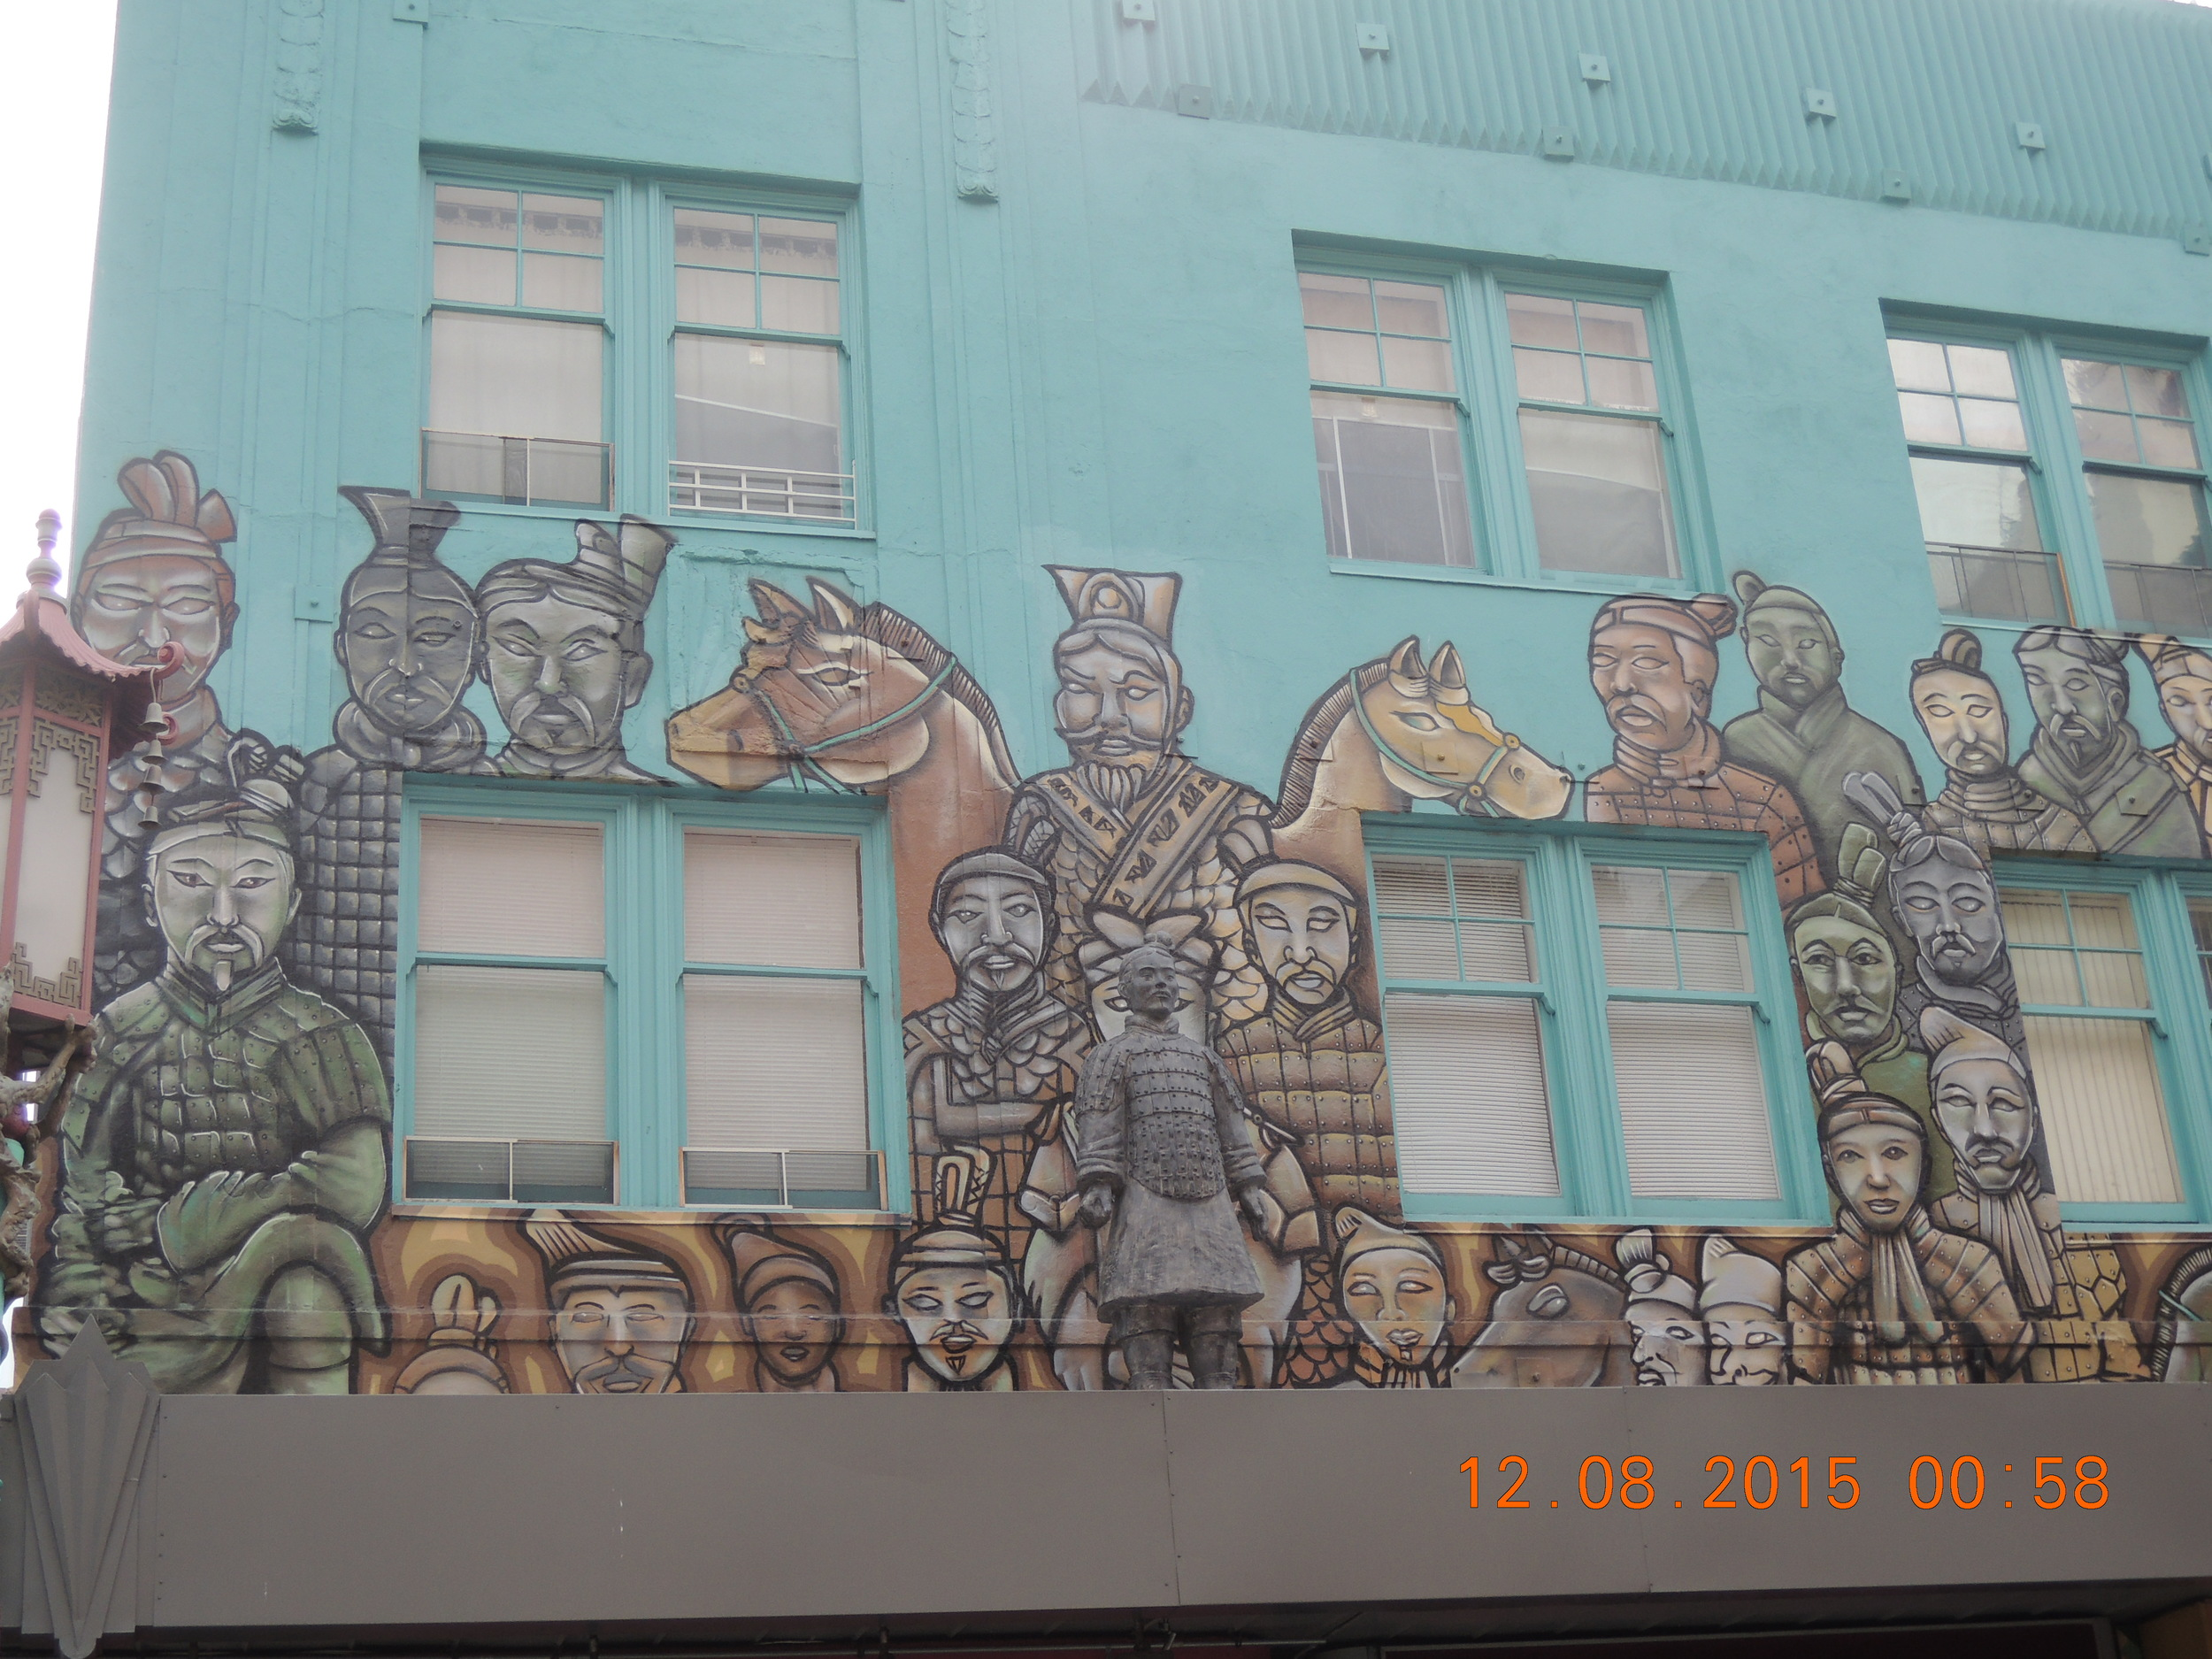 Building art in Chinatown